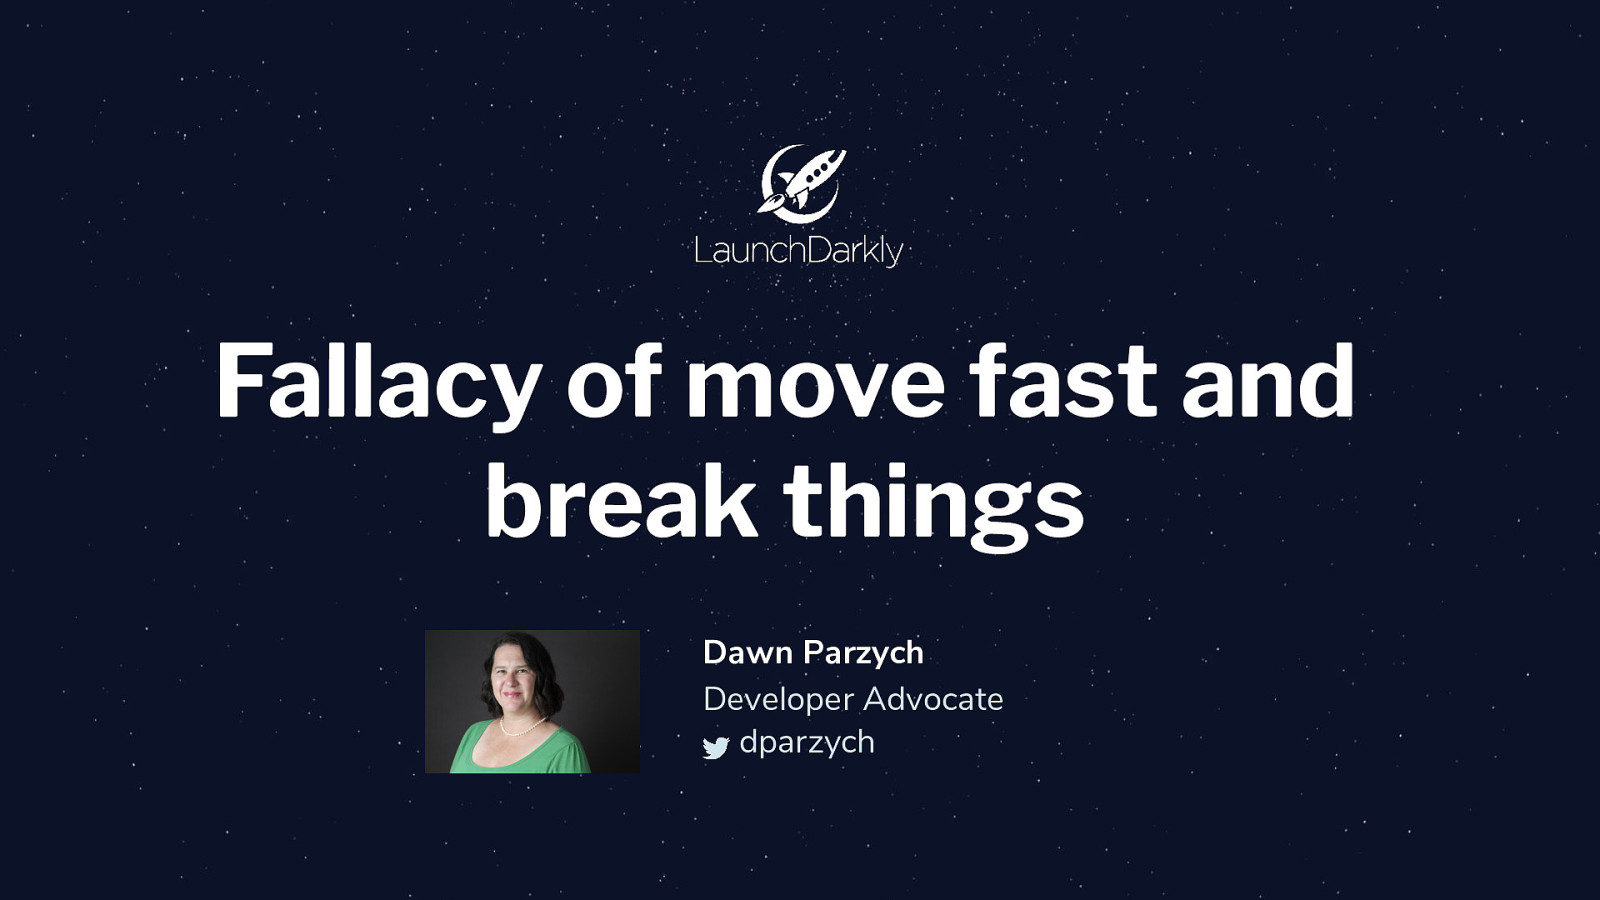 The Fallacy of Move Fast and Break Things